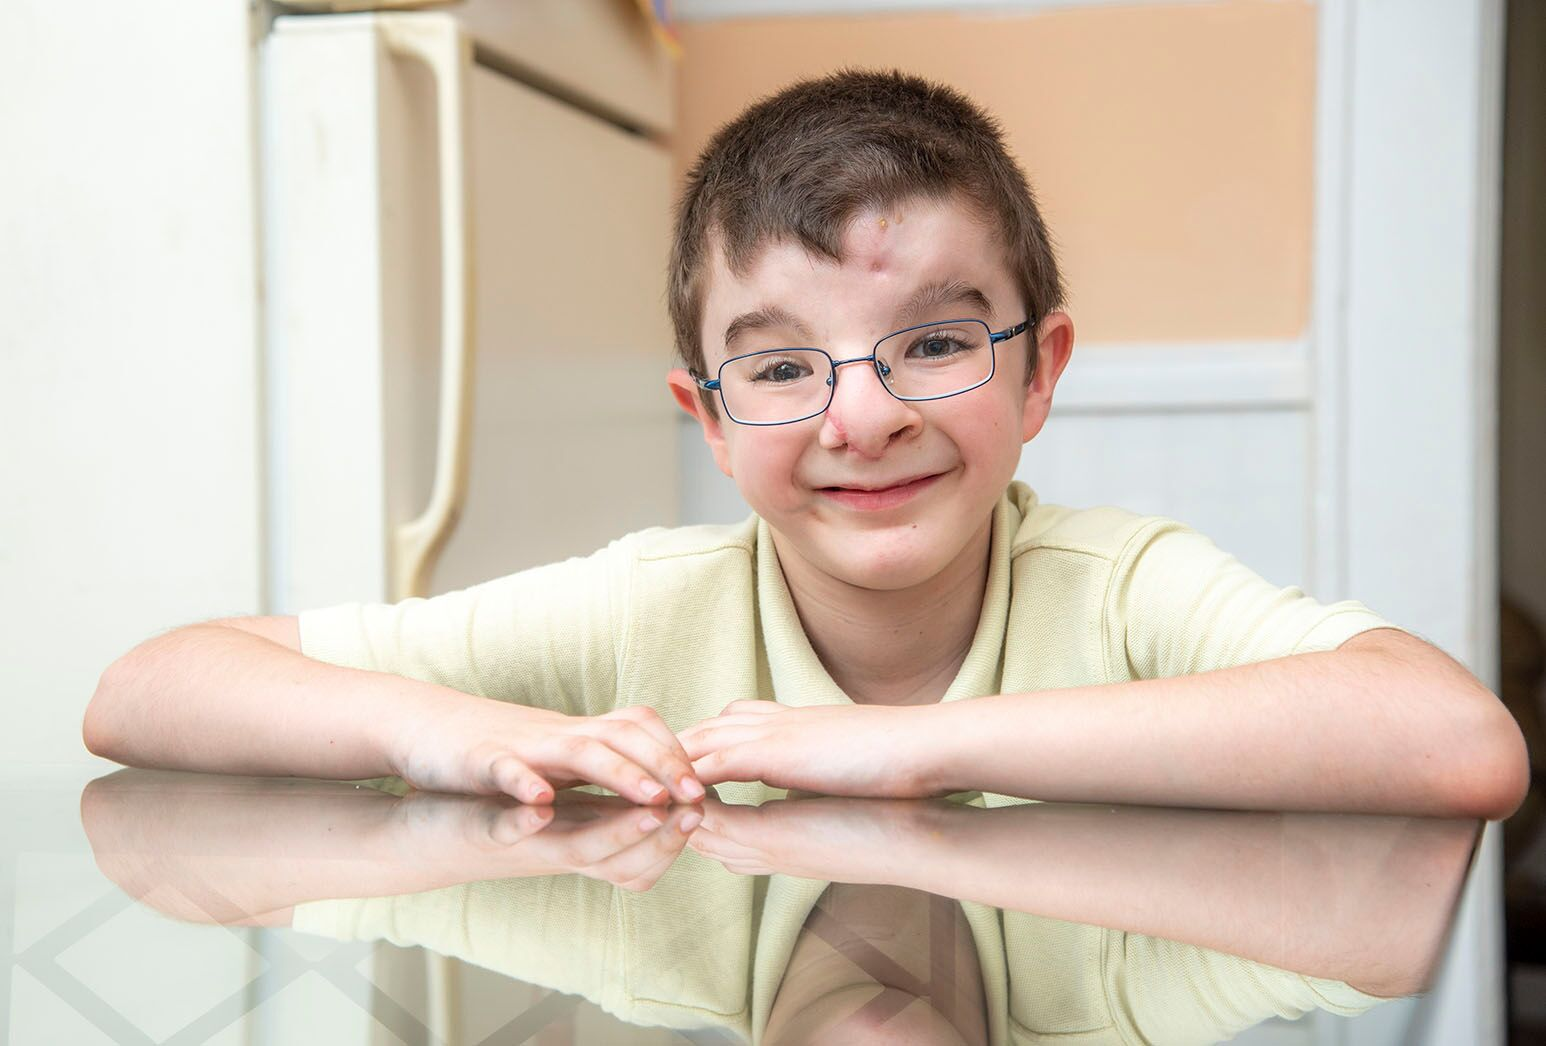 Young boy with dark hair and glasses sits smiling at a glass-topped kitchen table.